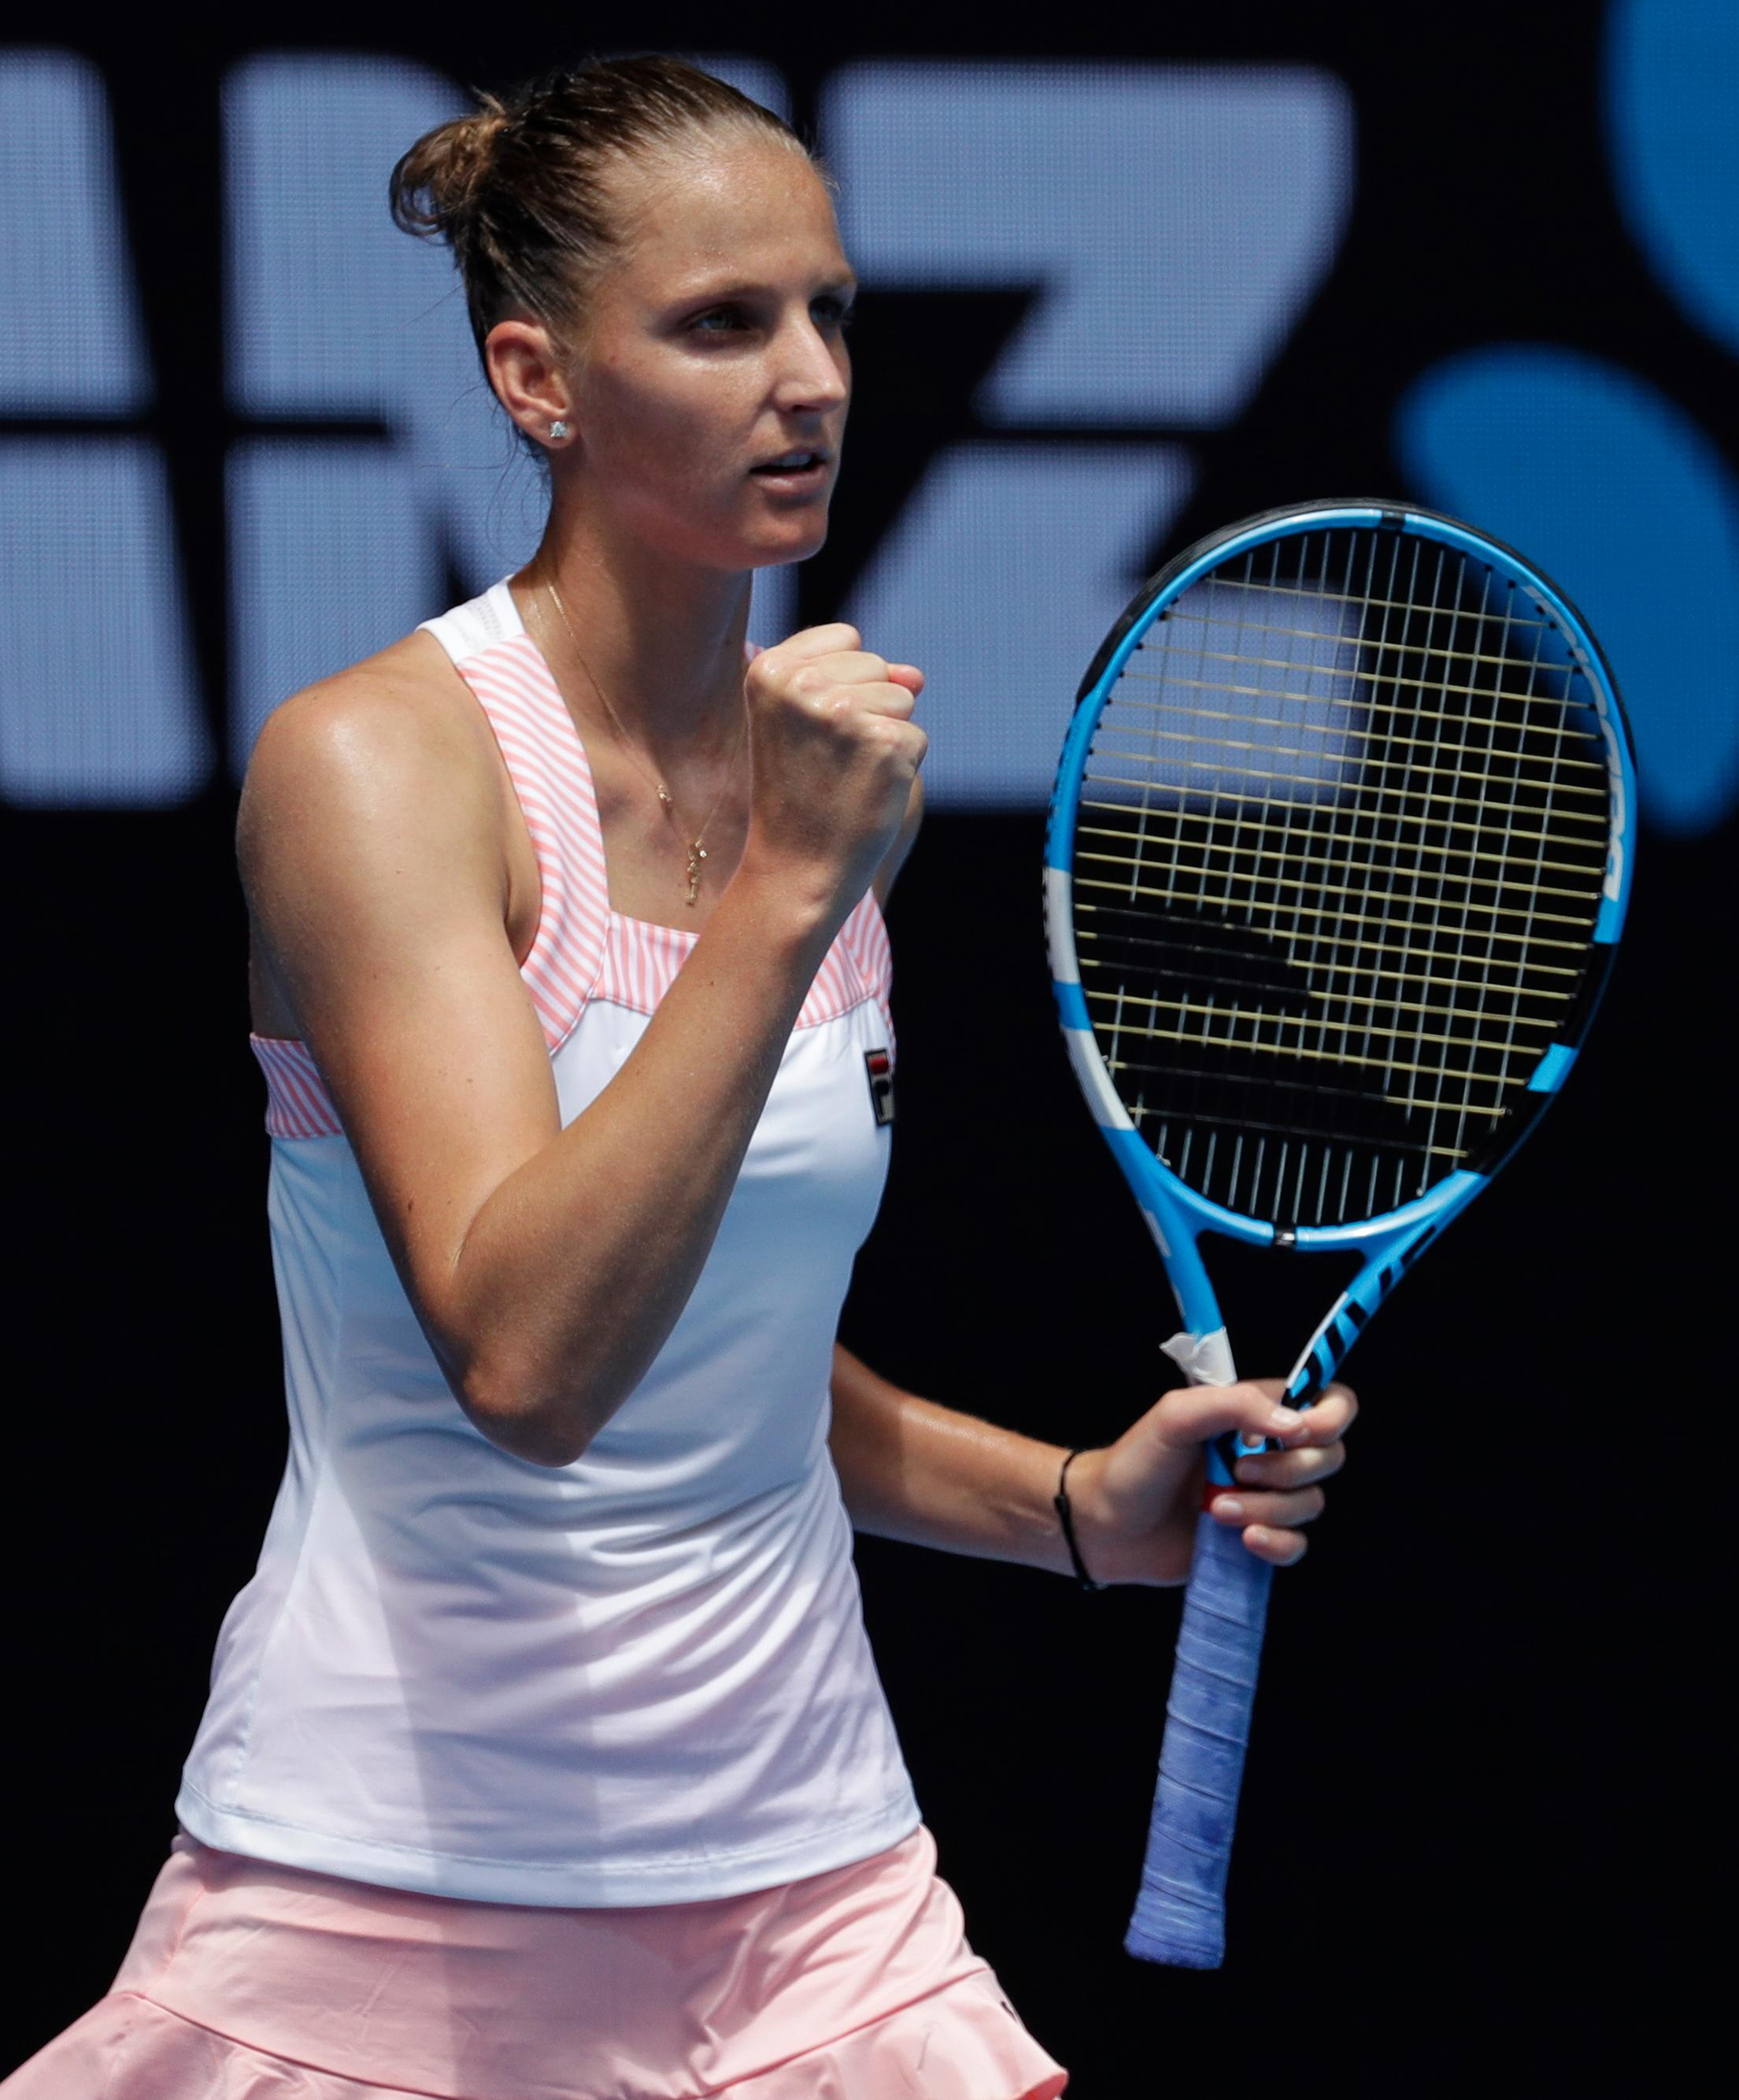 Karolina Pliskova of the Czech Republic celebrates after defeating compatriot Karolina Muchova in their first round match at the Australian Open tennis championships in Melbourne, Australia, Tuesday, Jan. 15, 2019. (AP Photo/Aaron Favila)